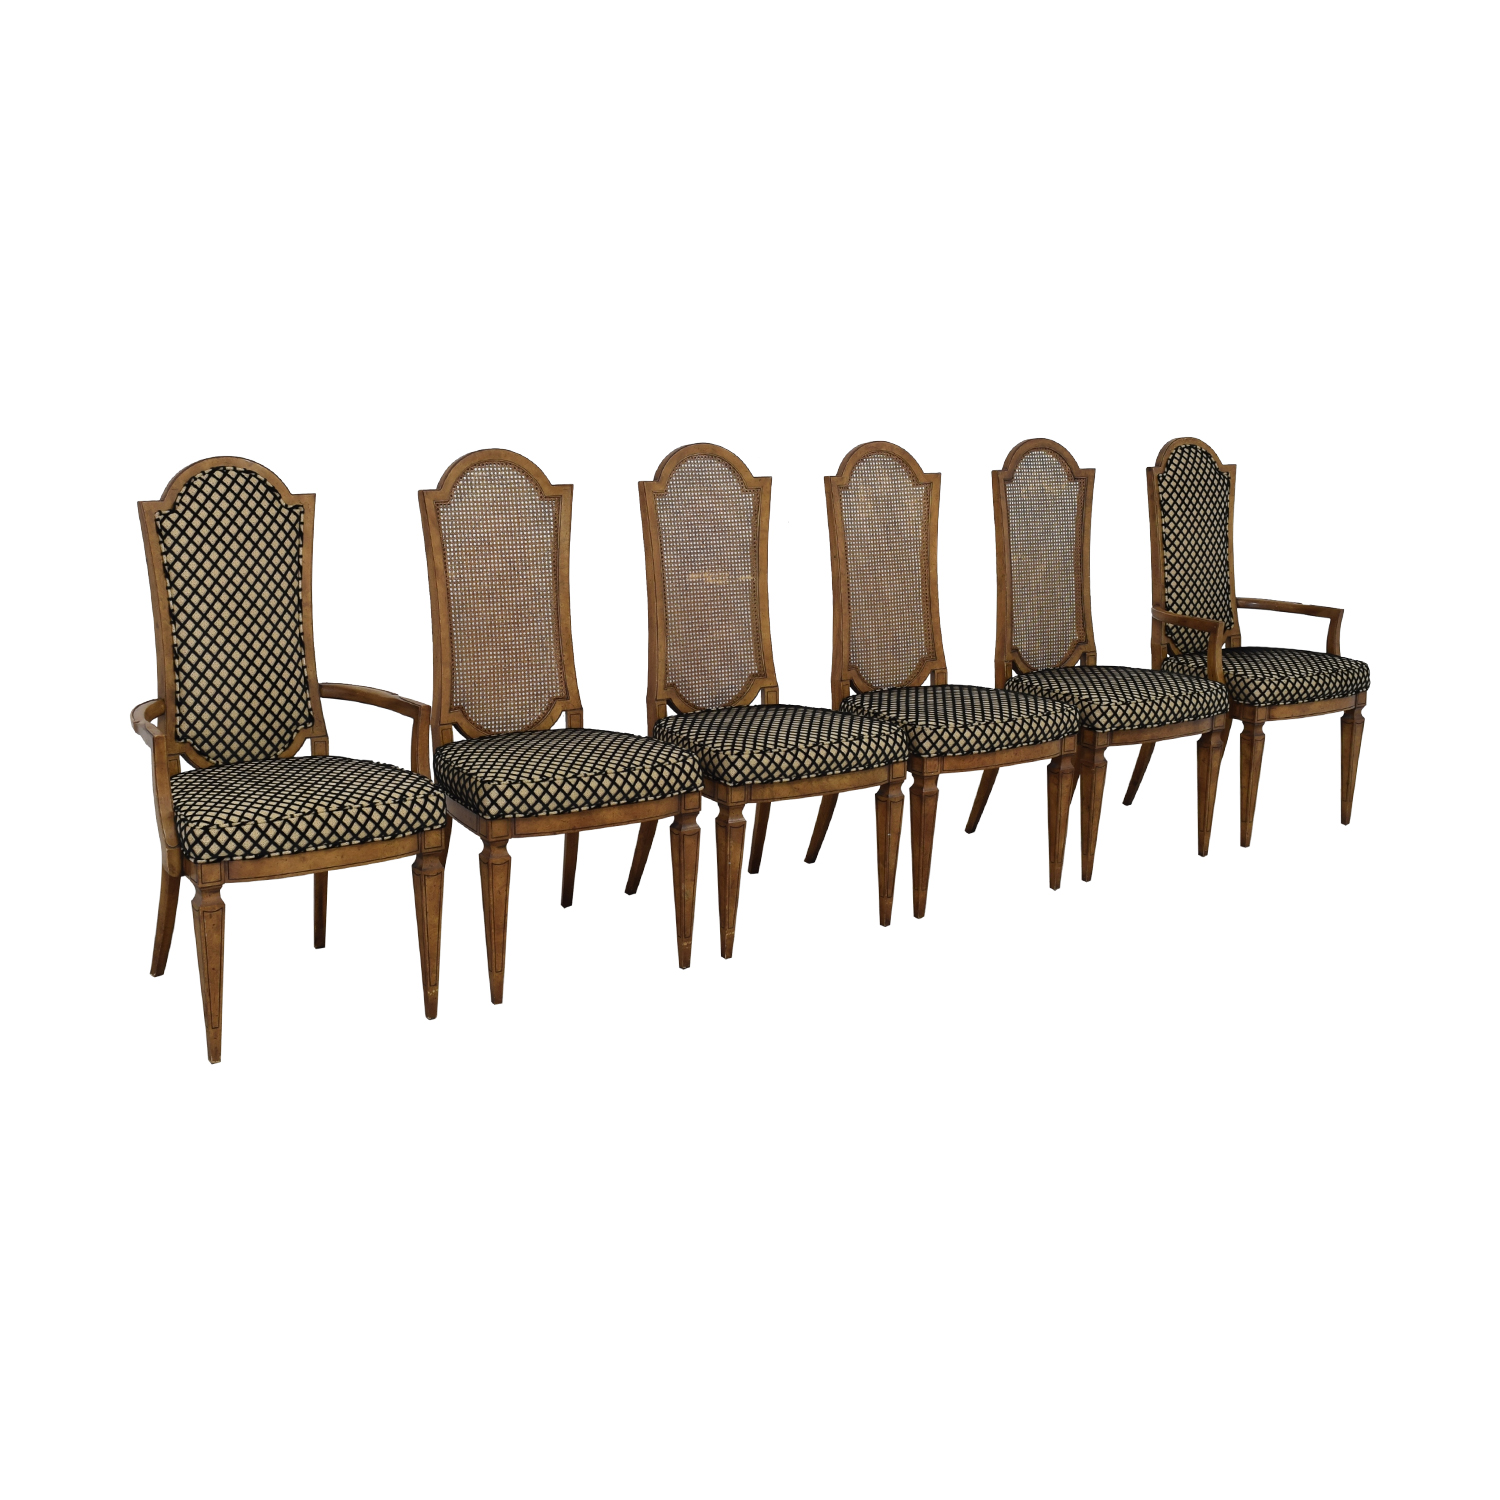 Mastercraft Furniture Mastercraft Furniture Patterned Dining Chairs coupon